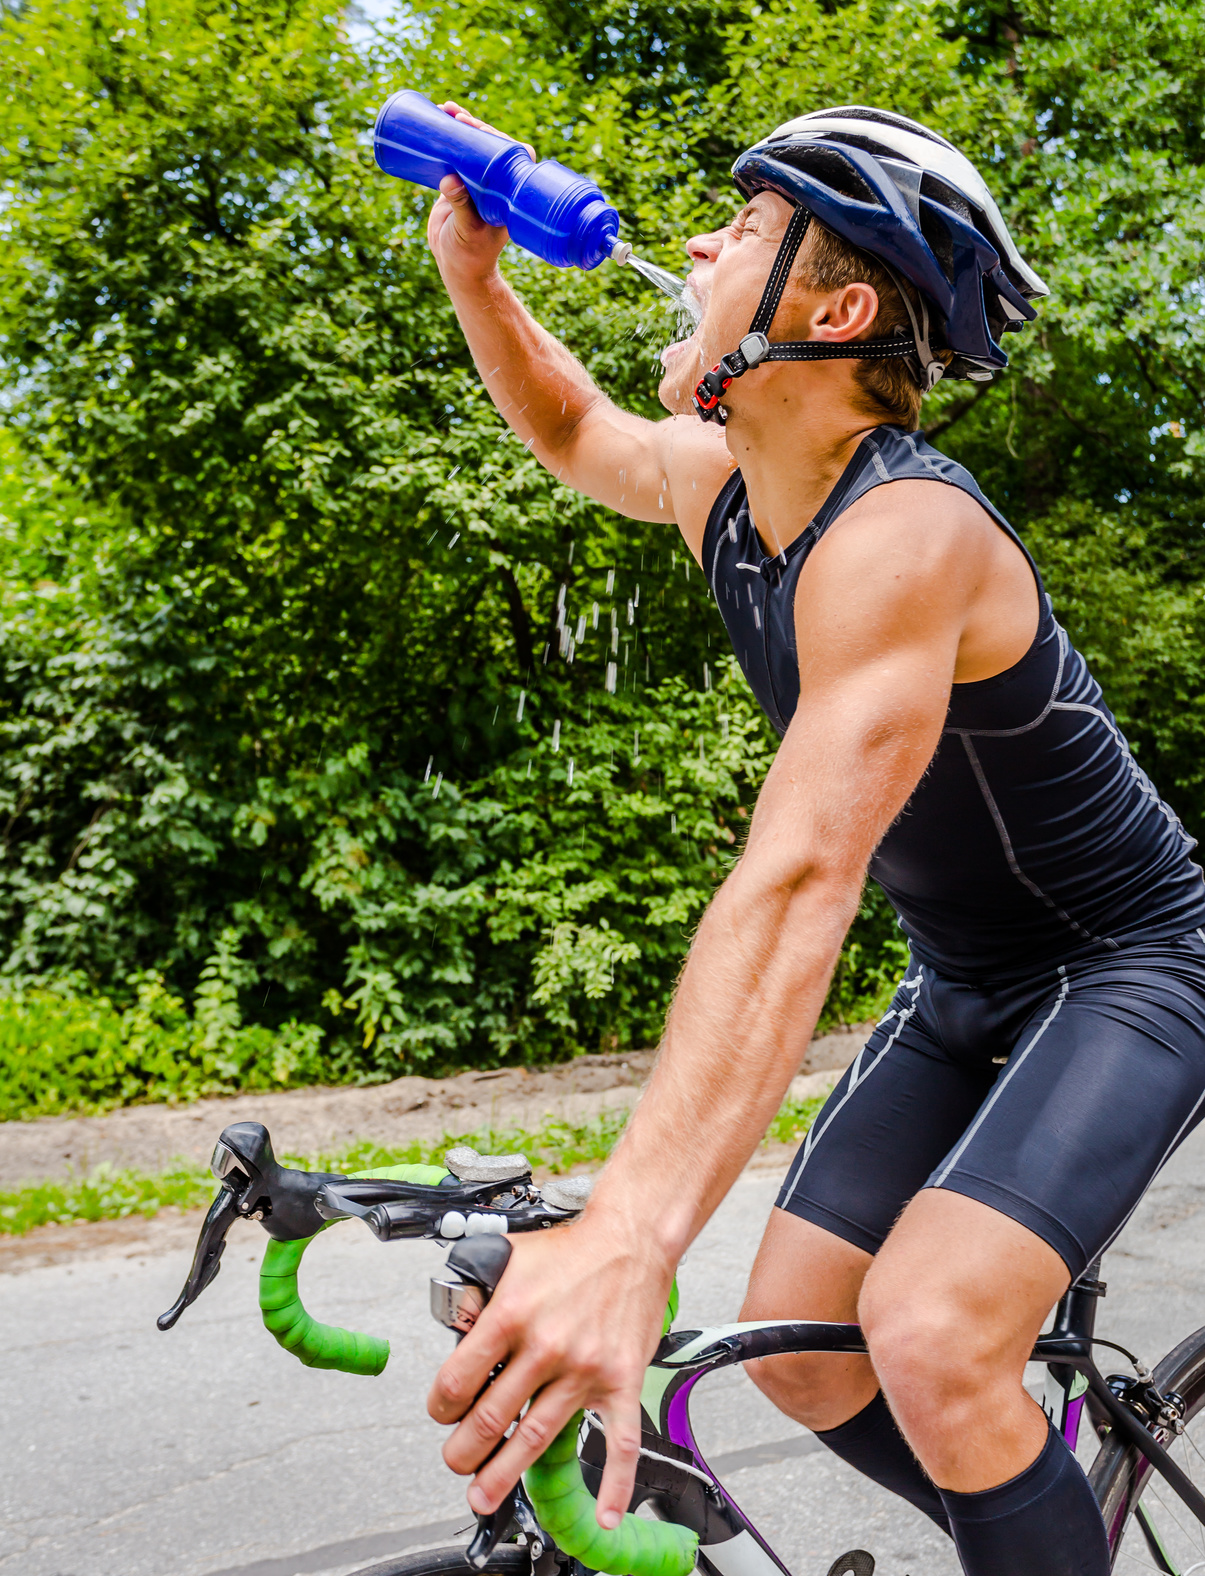 Alkaline water is great for athletes and anyone on the go!